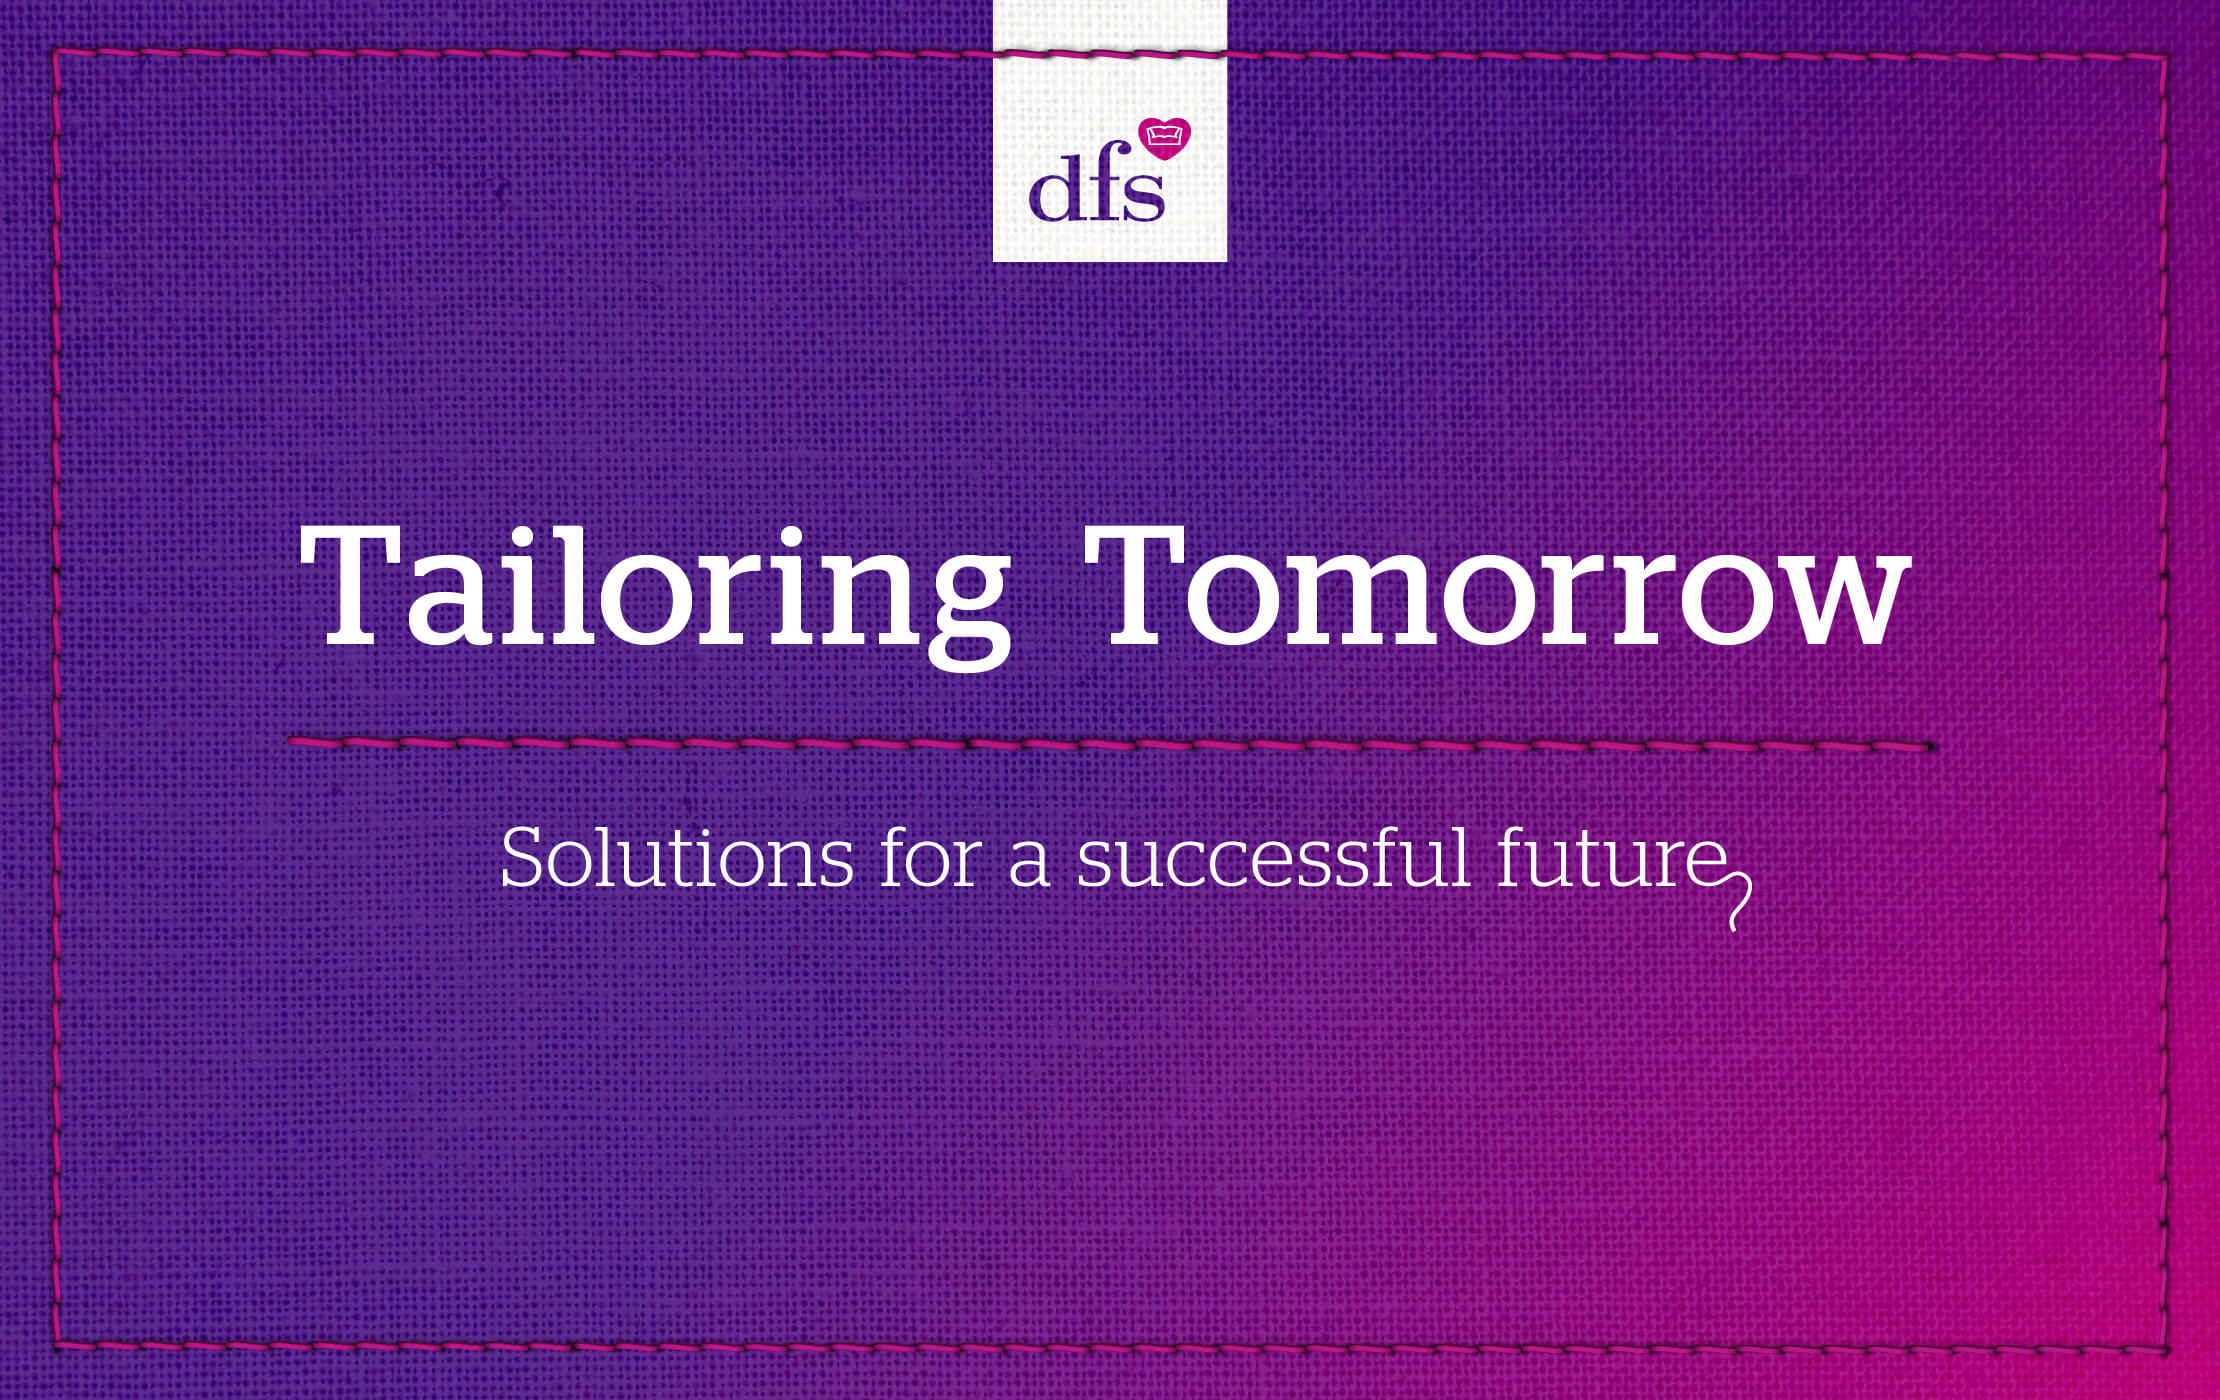 Main 'Tailoring Tomorrow' logo and accompanying tagline in white text, stitched into a purple and pink fabric background